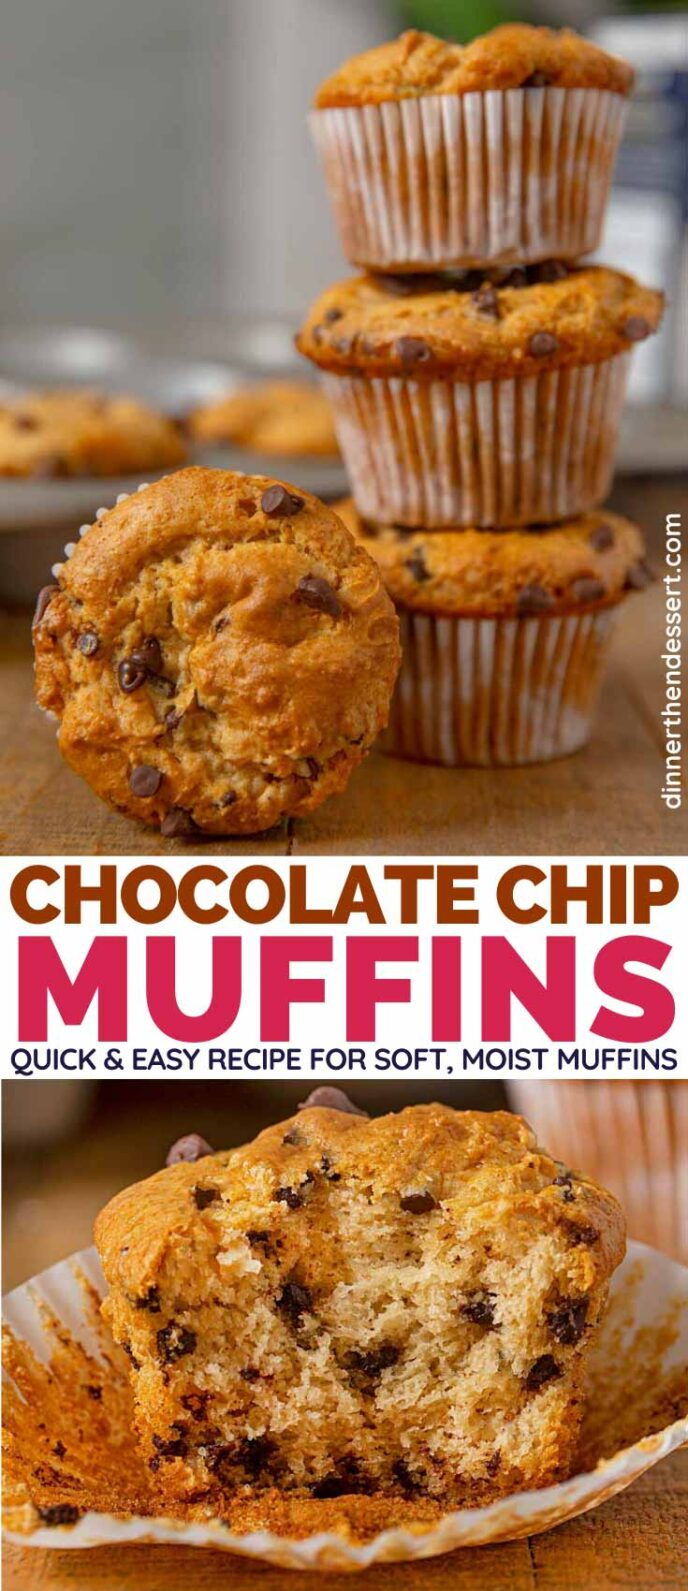 Chocolate Chip Muffins collage